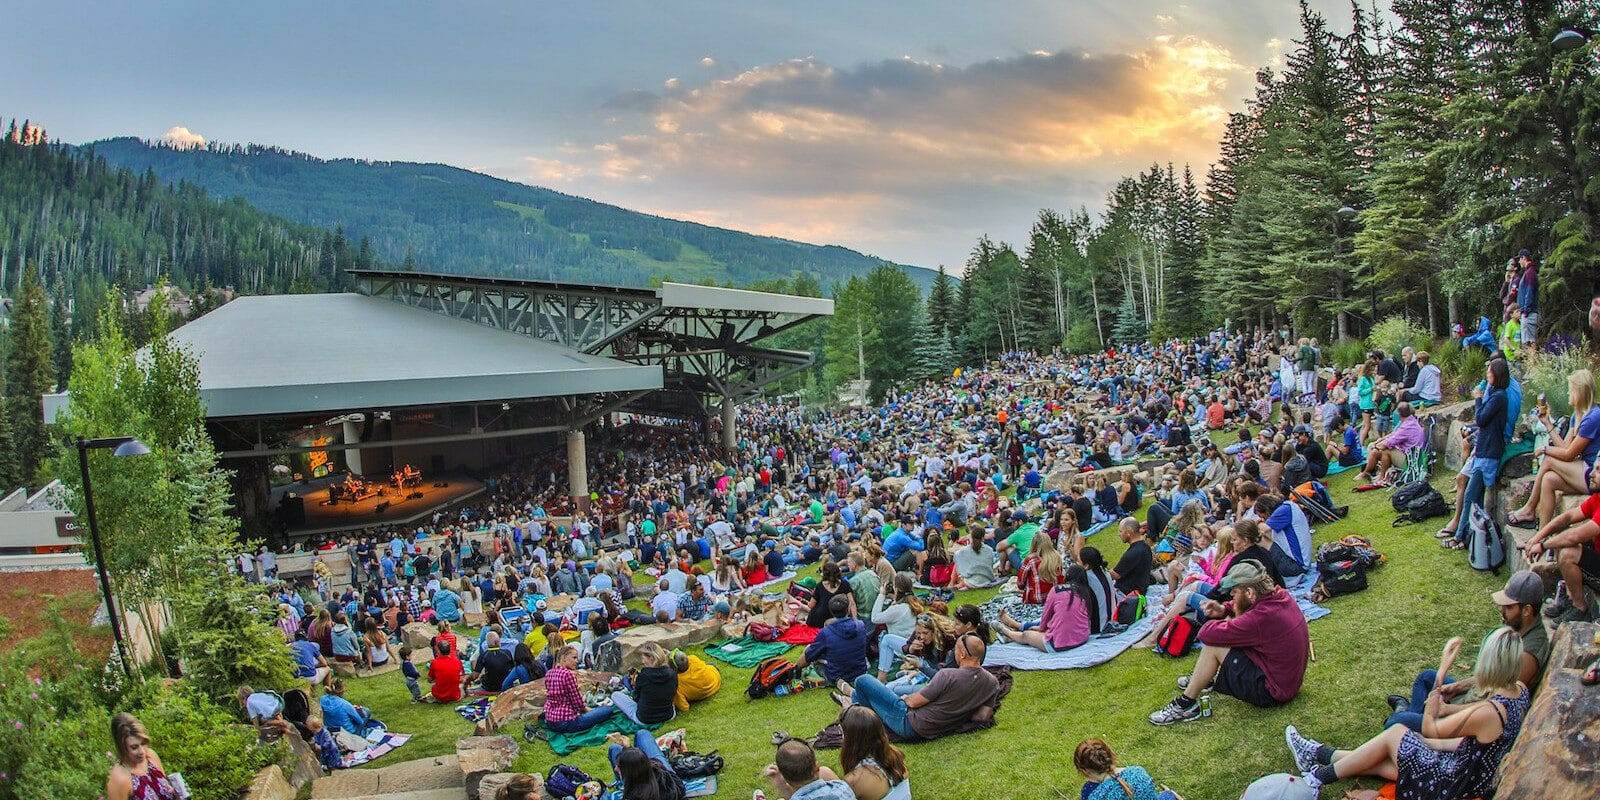 Image of the Gerald R Ford Amphitheater in Vail, Colorado